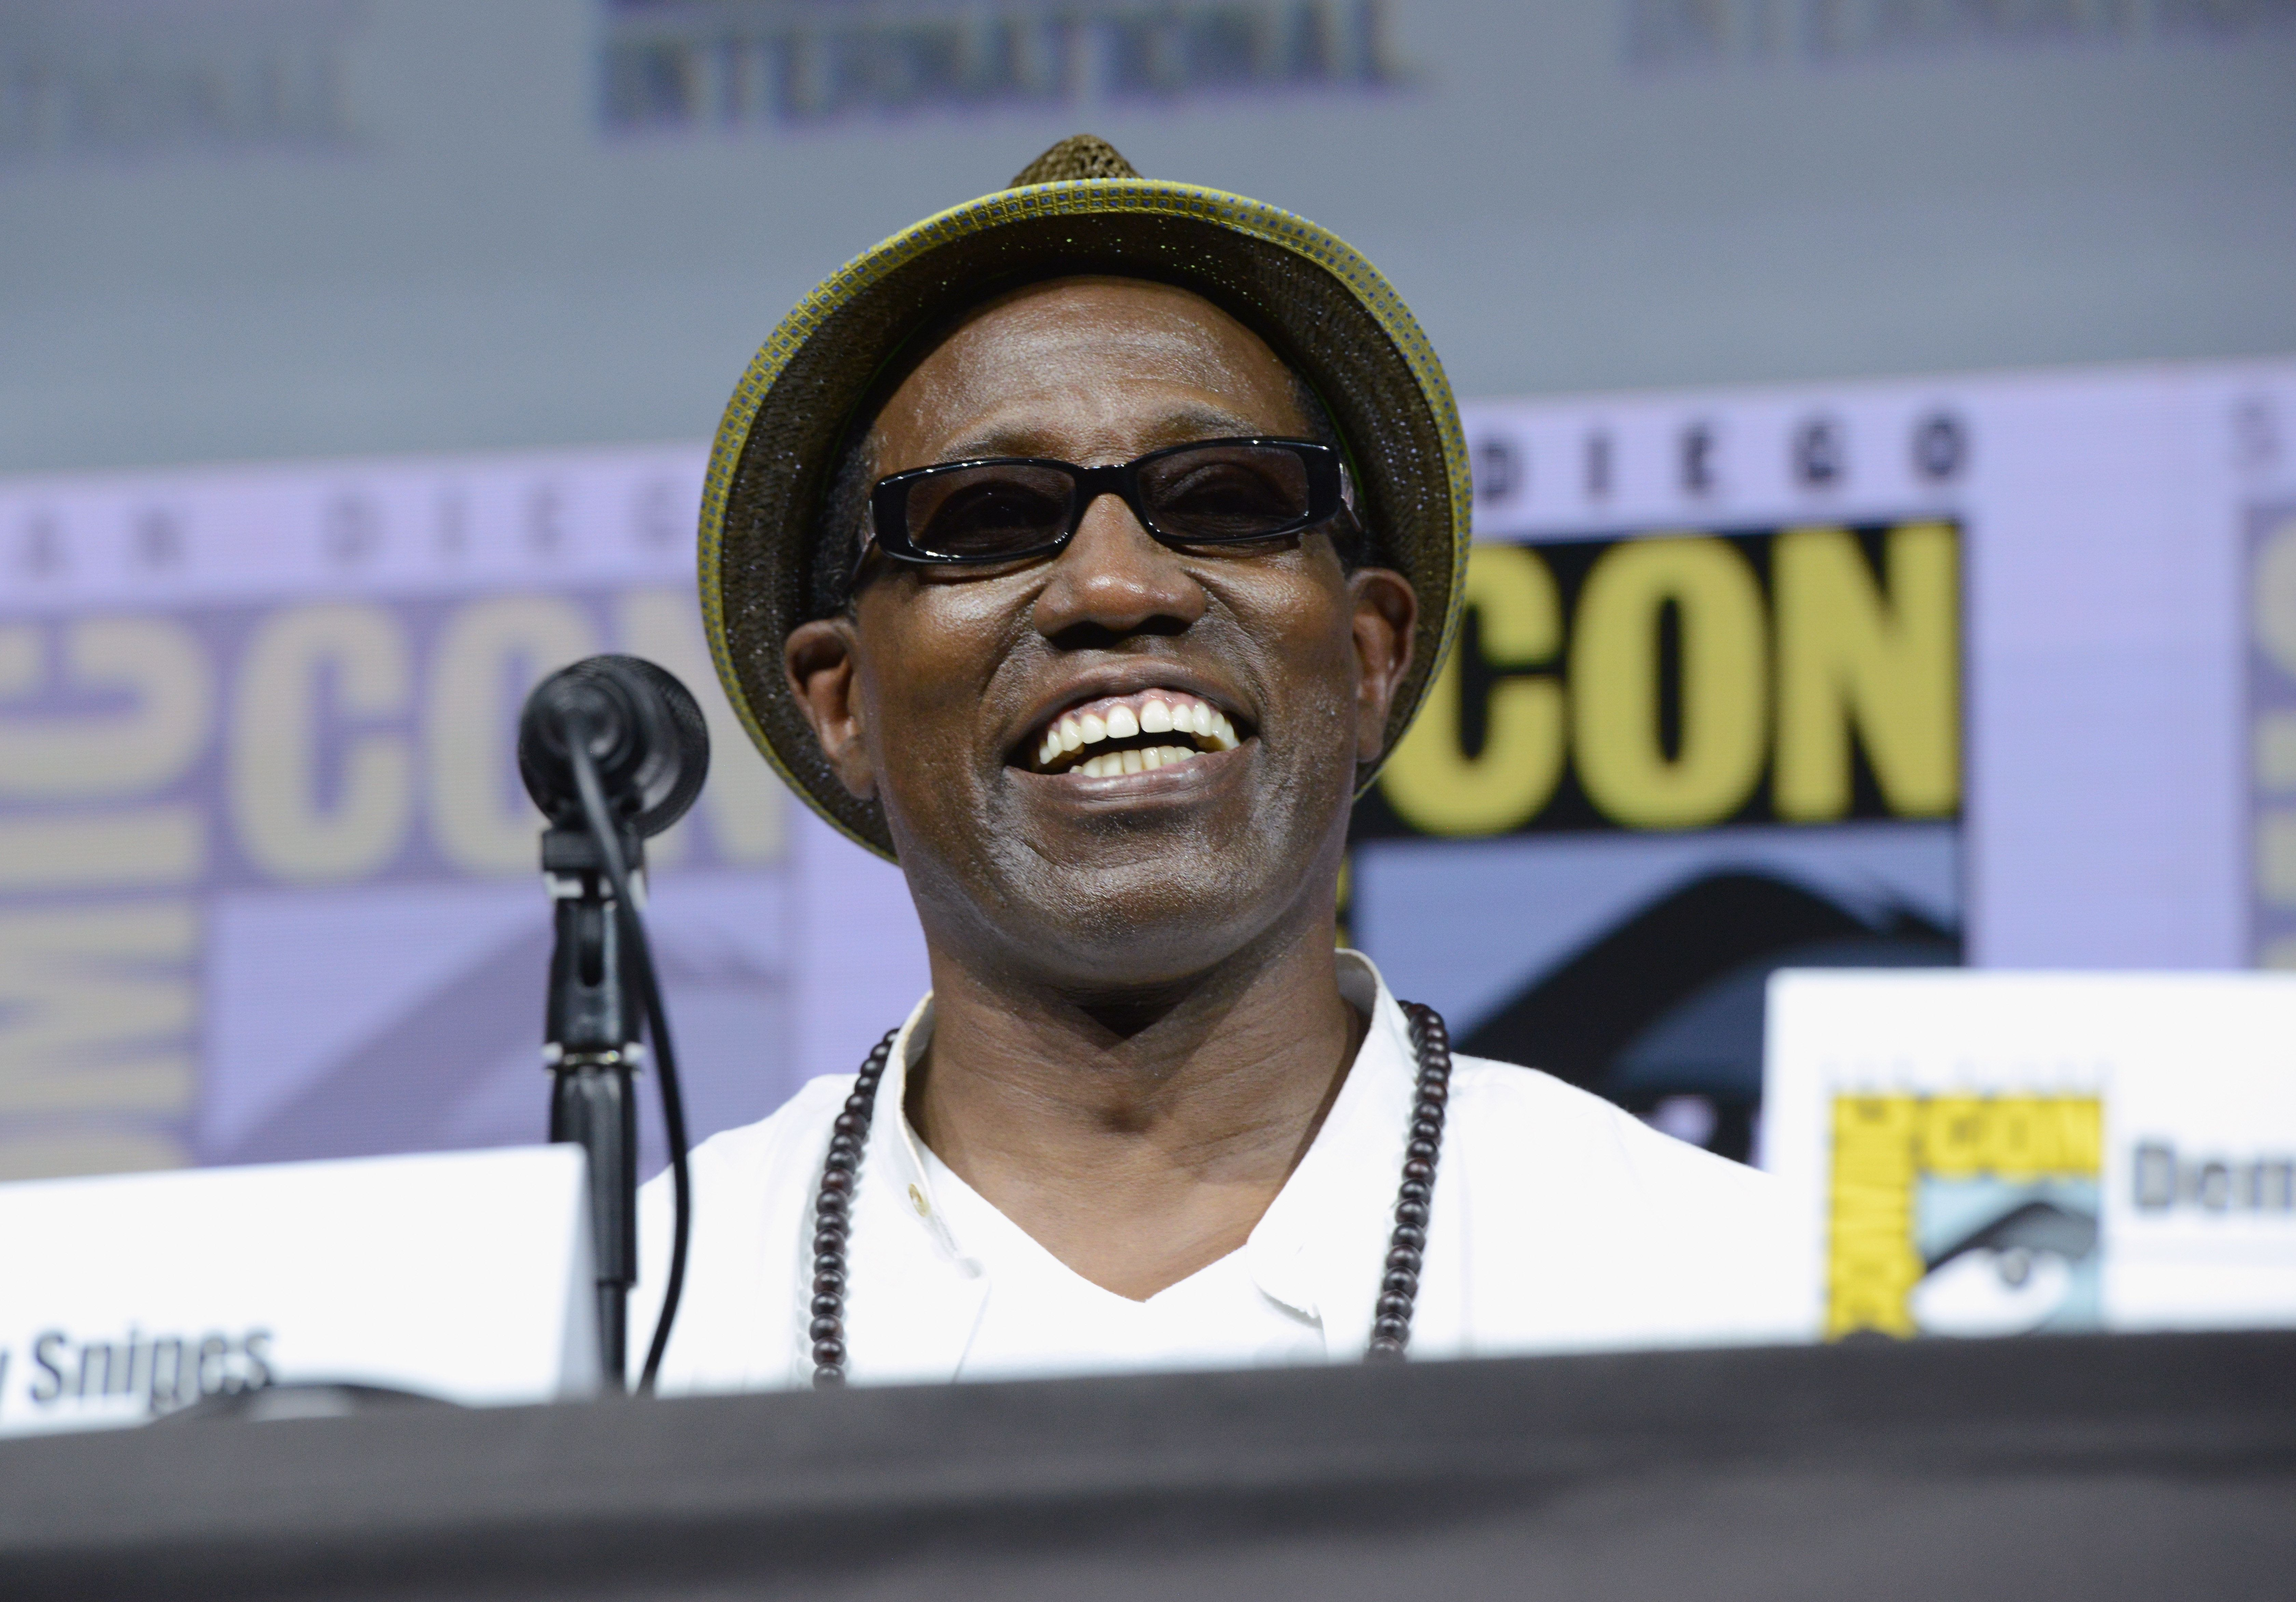 SAN DIEGO, CA - JULY 21:  Wesley Snipes speaks onstage at RZA: Movies, Music and Martial Arts during Comic-Con International 2018 at San Diego Convention Center on July 21, 2018 in San Diego, California.  (Photo by Albert L. Ortega/Getty Images)